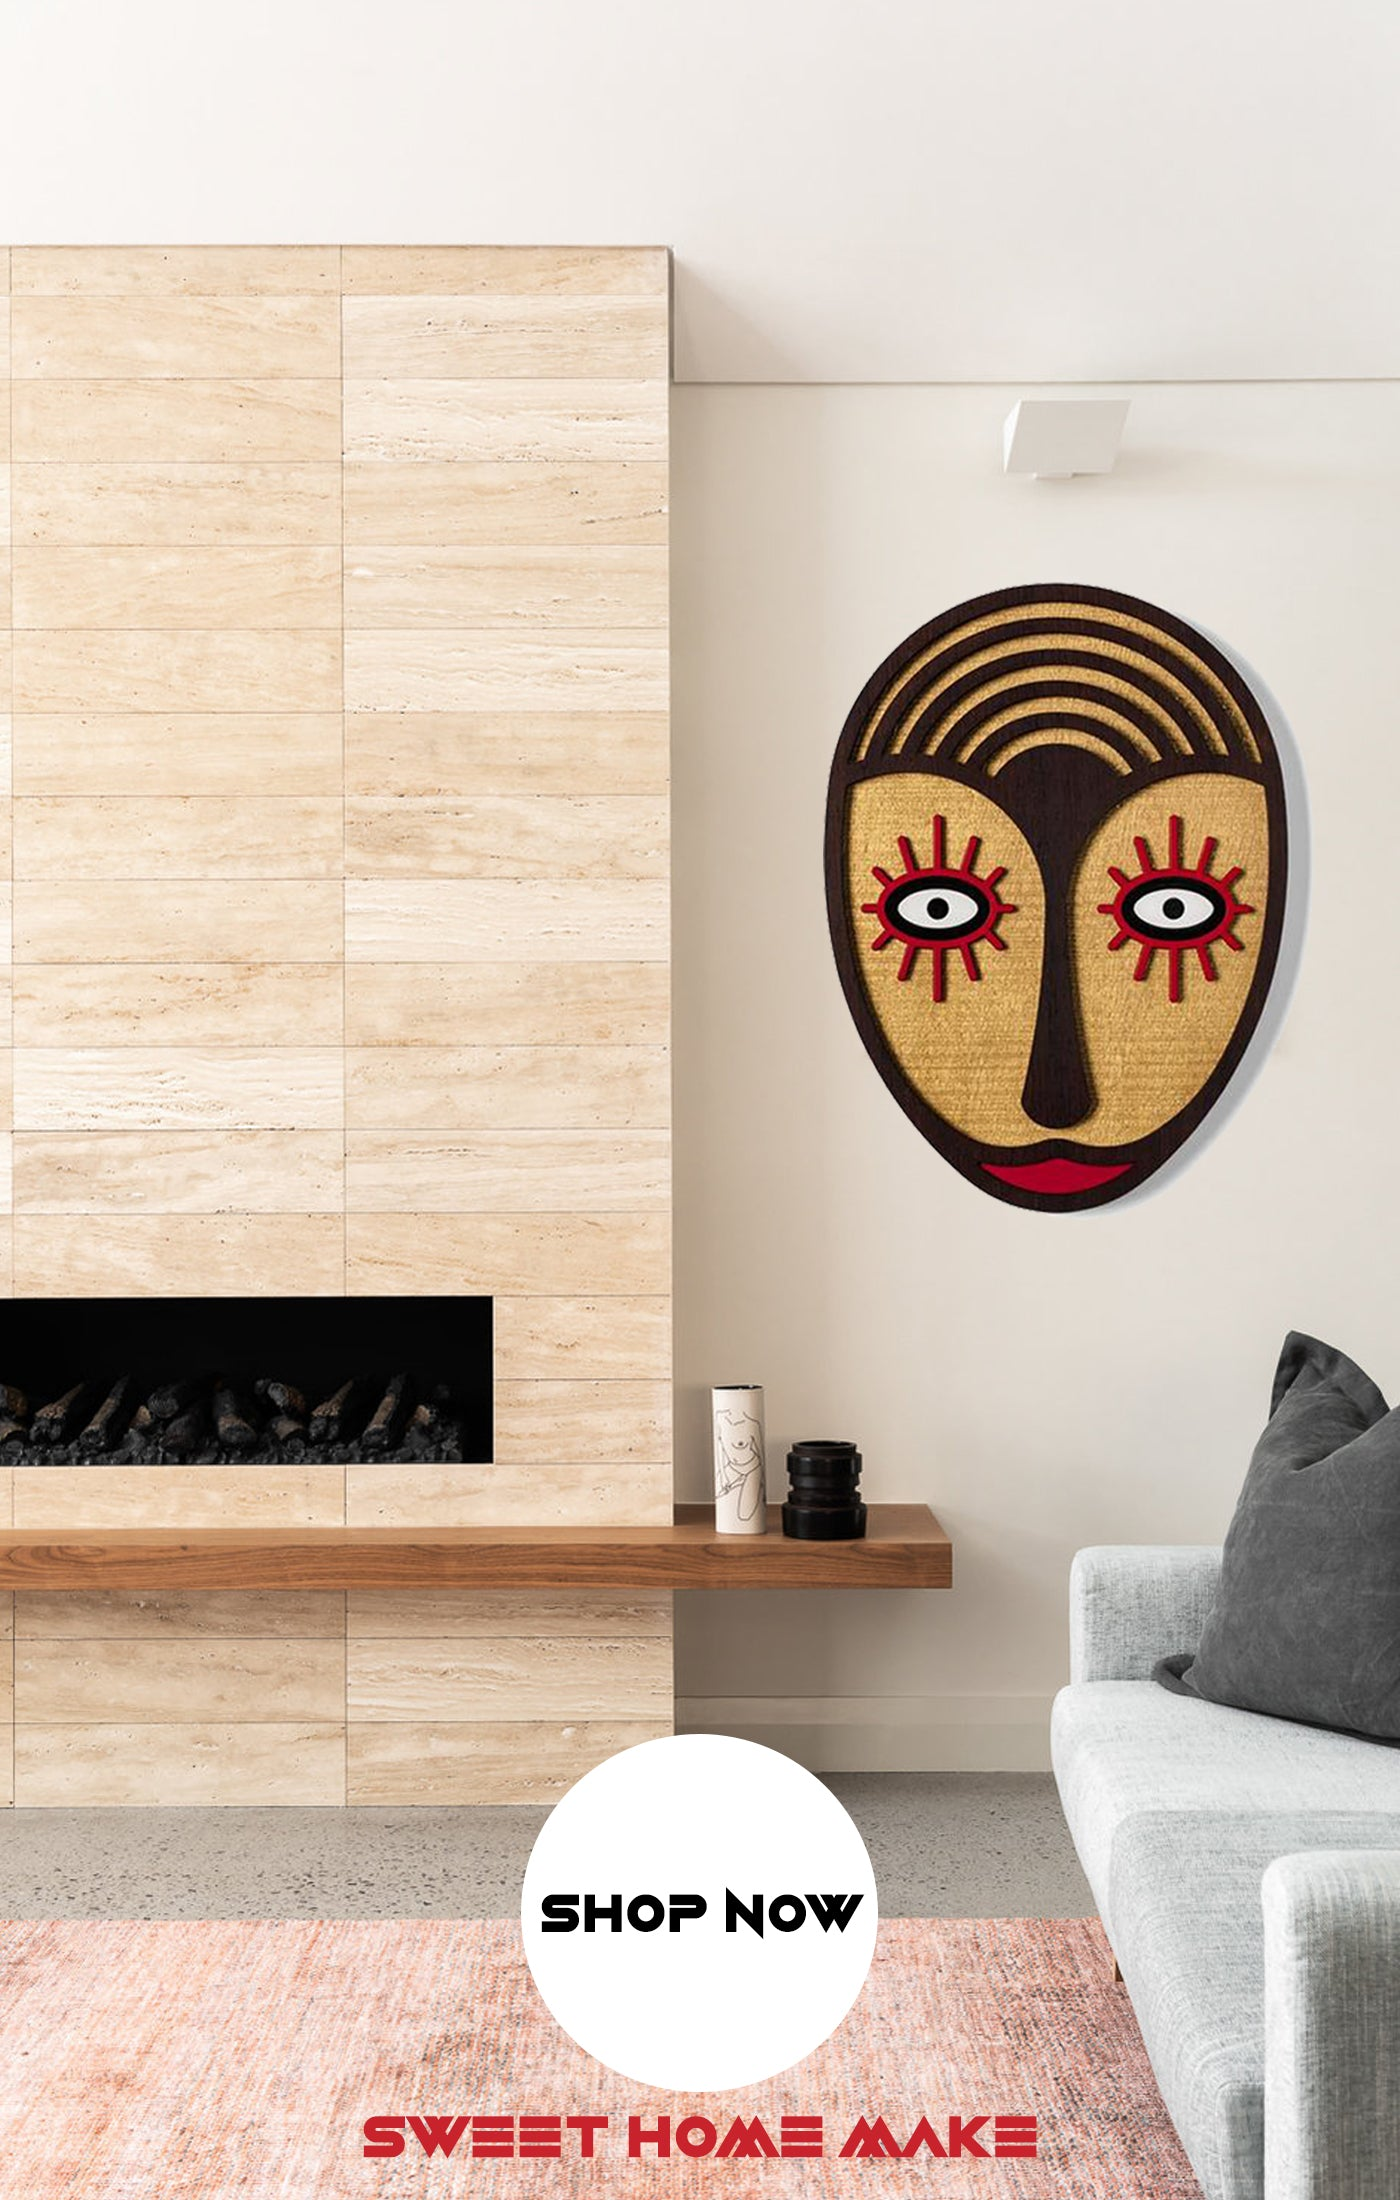 Boho Wood Wall Art at the Living Room Wall Decor